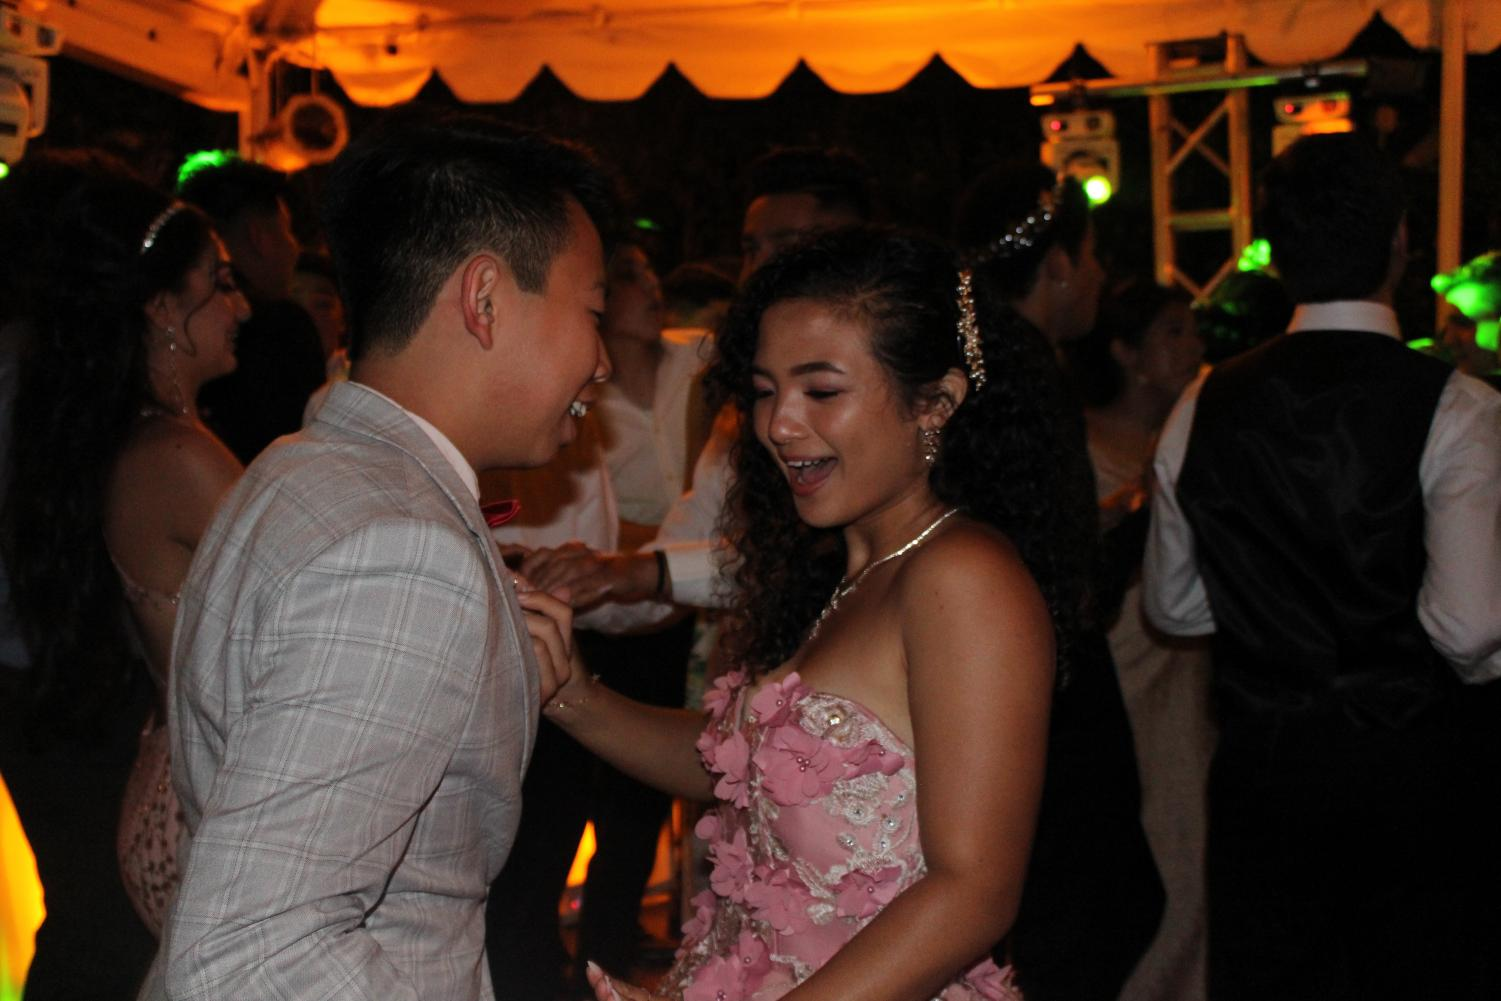 Junior+Alan+Ly+and+senior+Ceejay+Posis+dance+together+on+May+18.